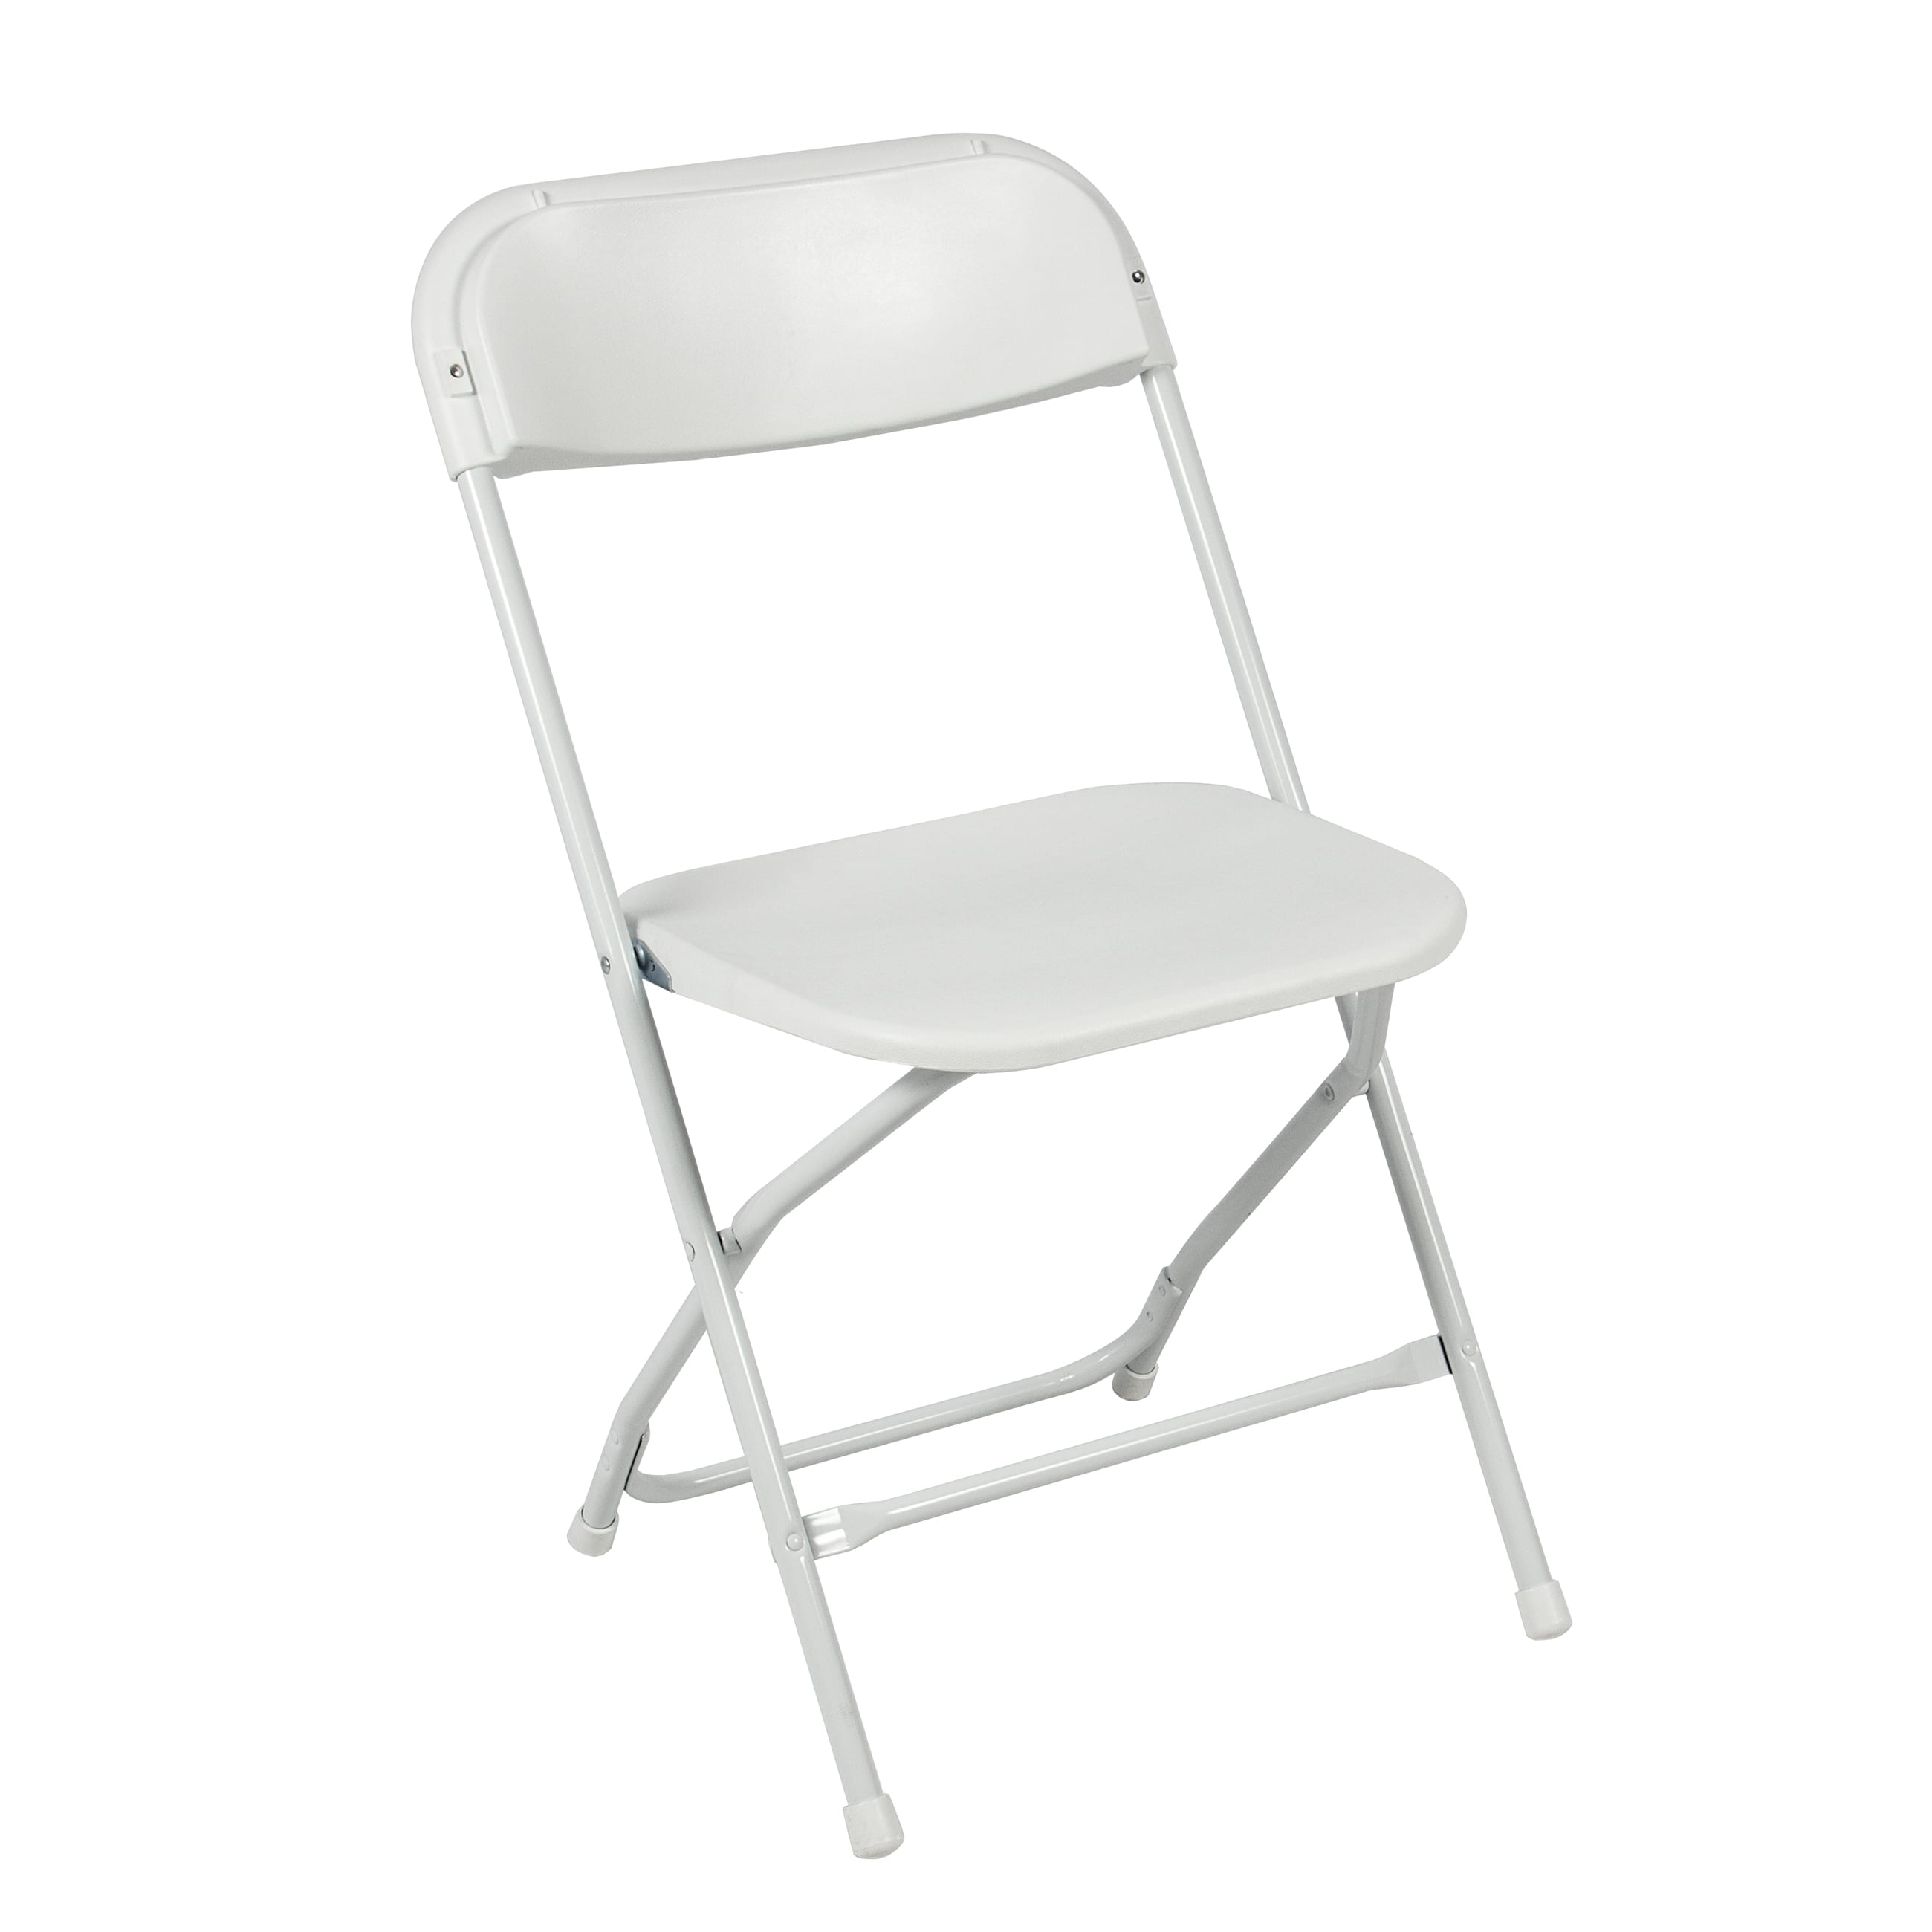 white folding chair copa beach celebration chairs orlando wedding and party rentals